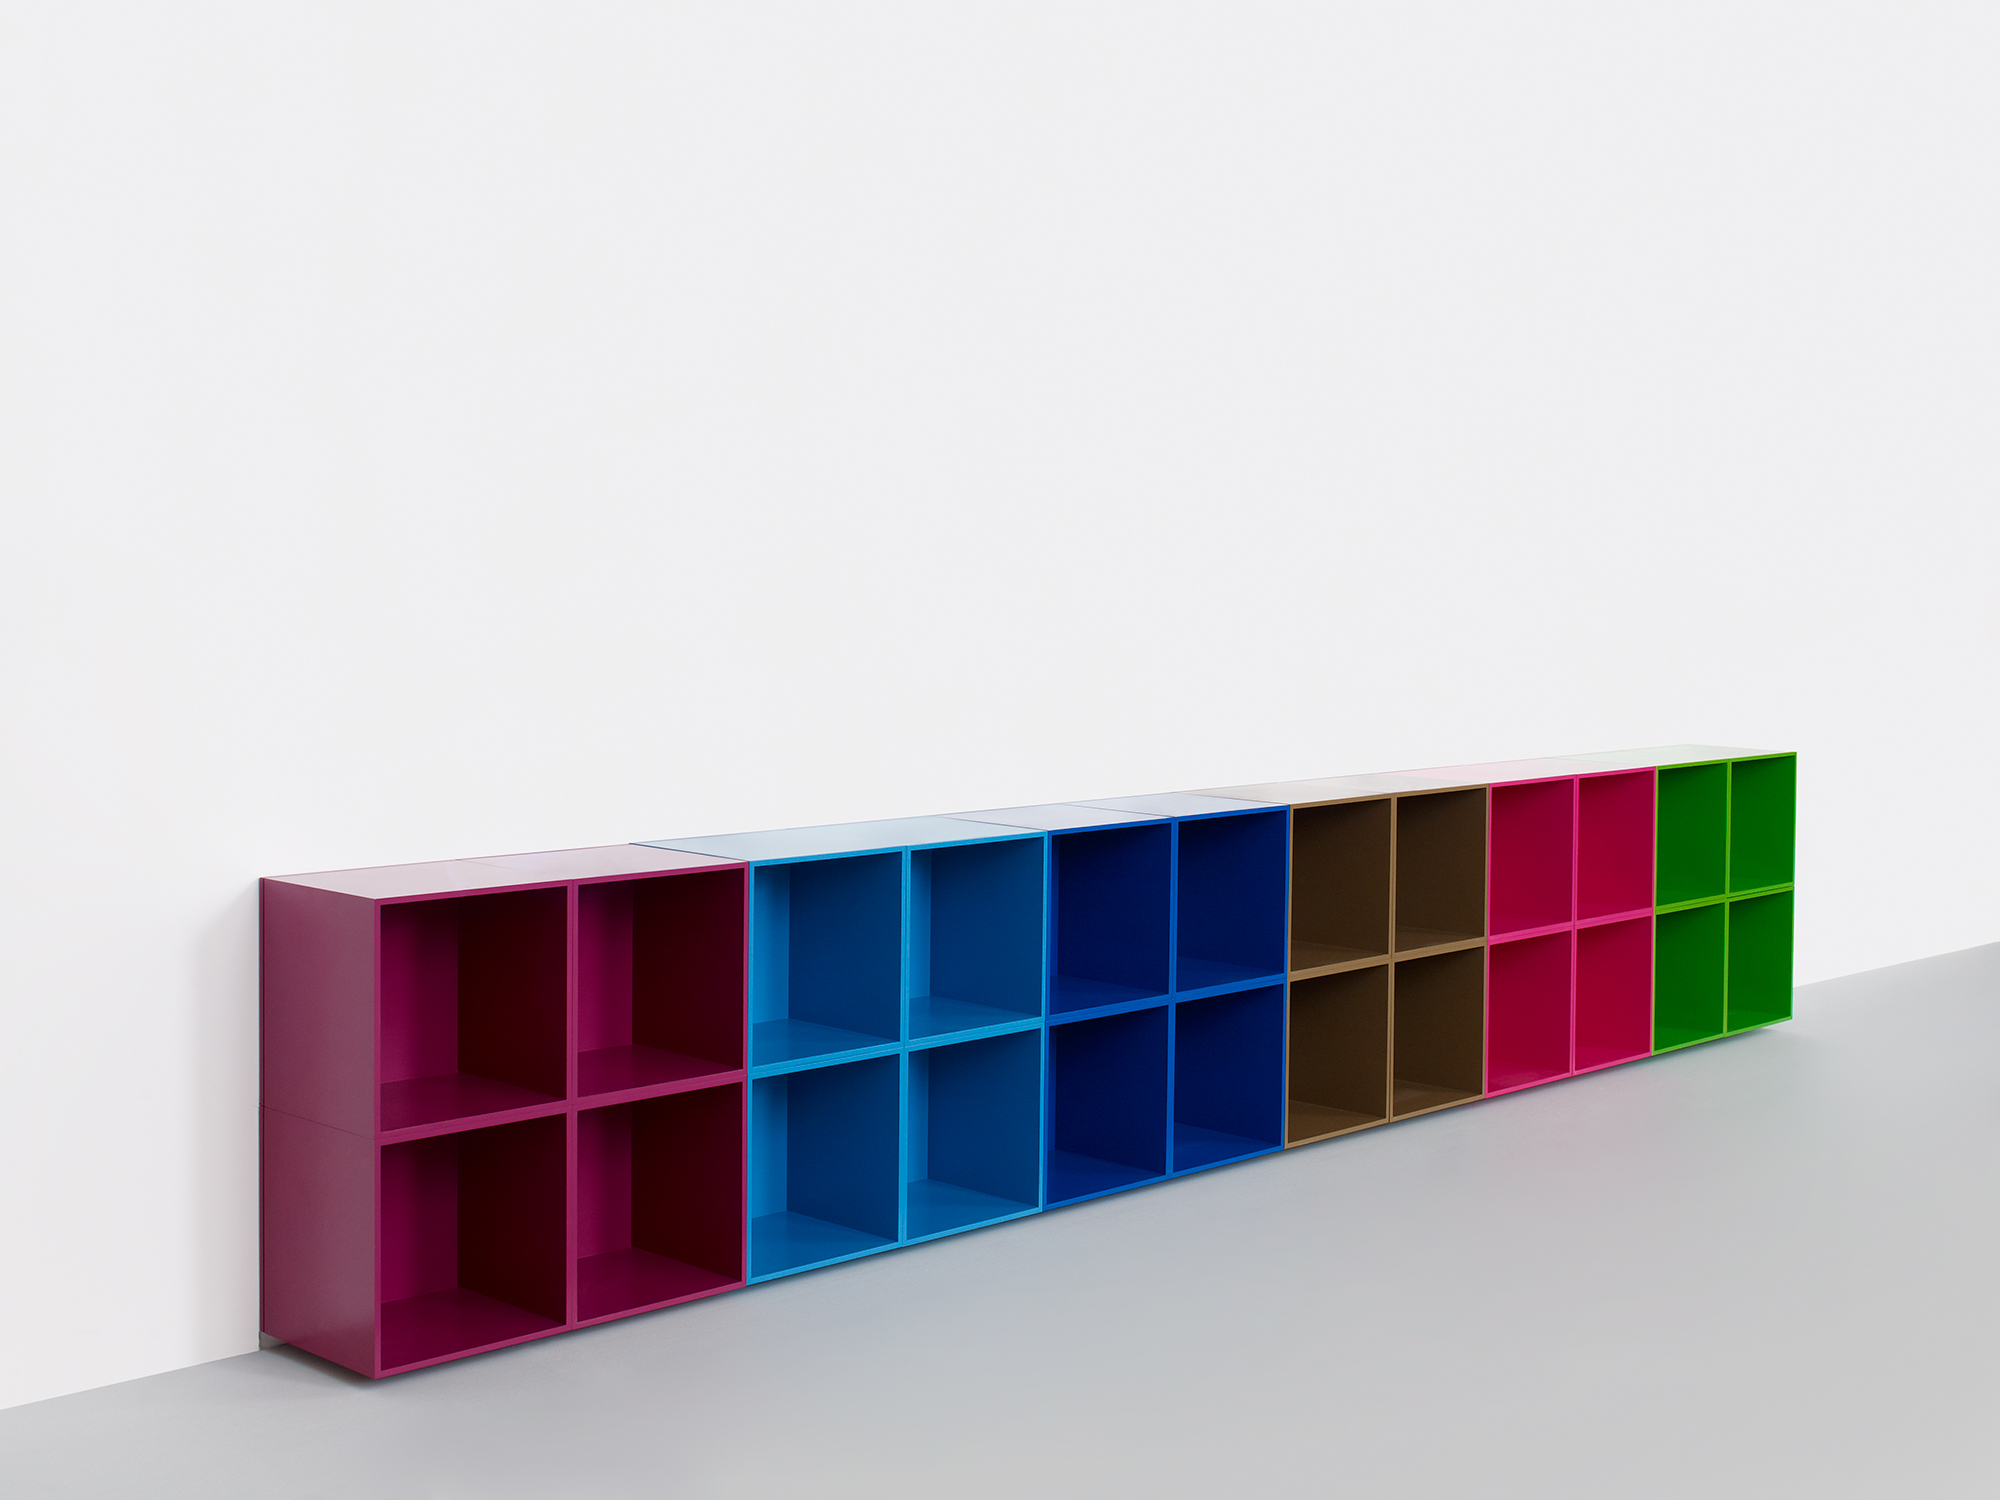 cubit bibliotheque etagere 05 la boite verte. Black Bedroom Furniture Sets. Home Design Ideas